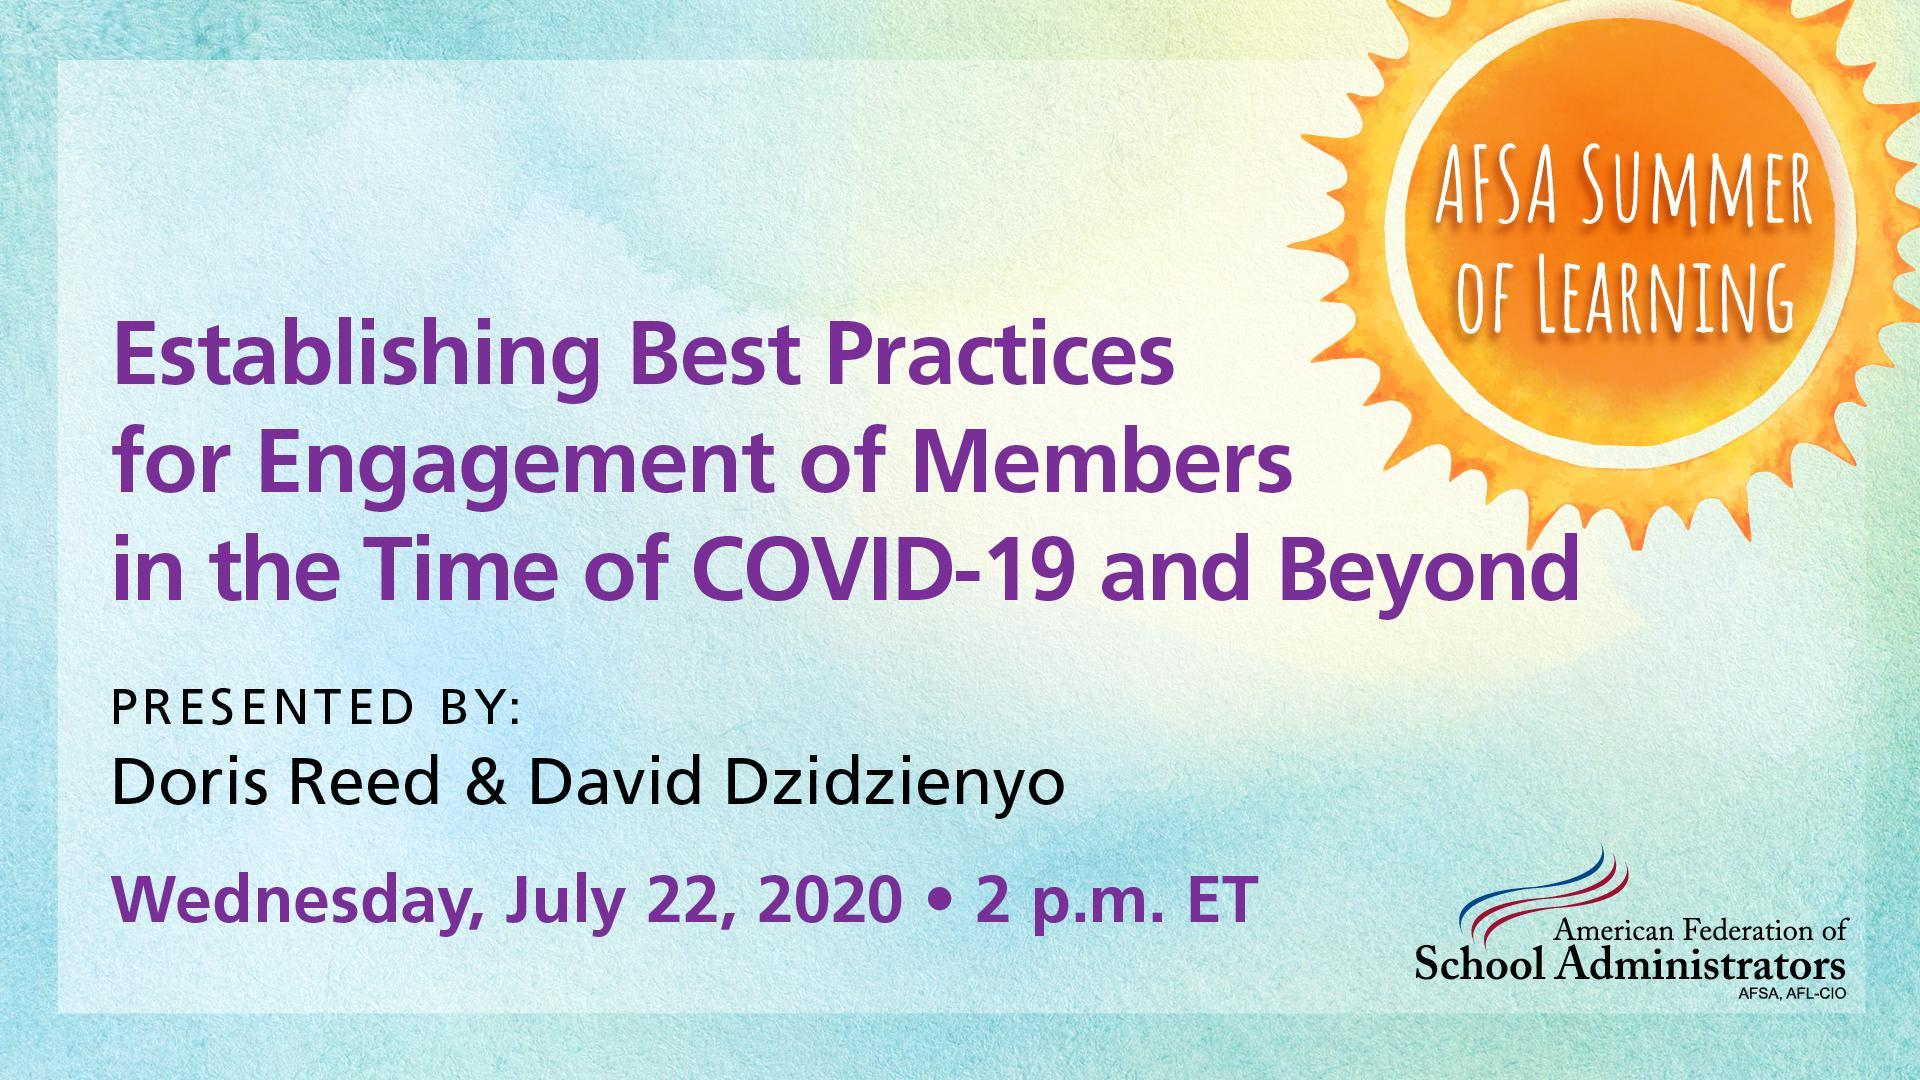 Establishing Best Practices for Continued Engagement of Members in the Time of COVID-19 and Beyond